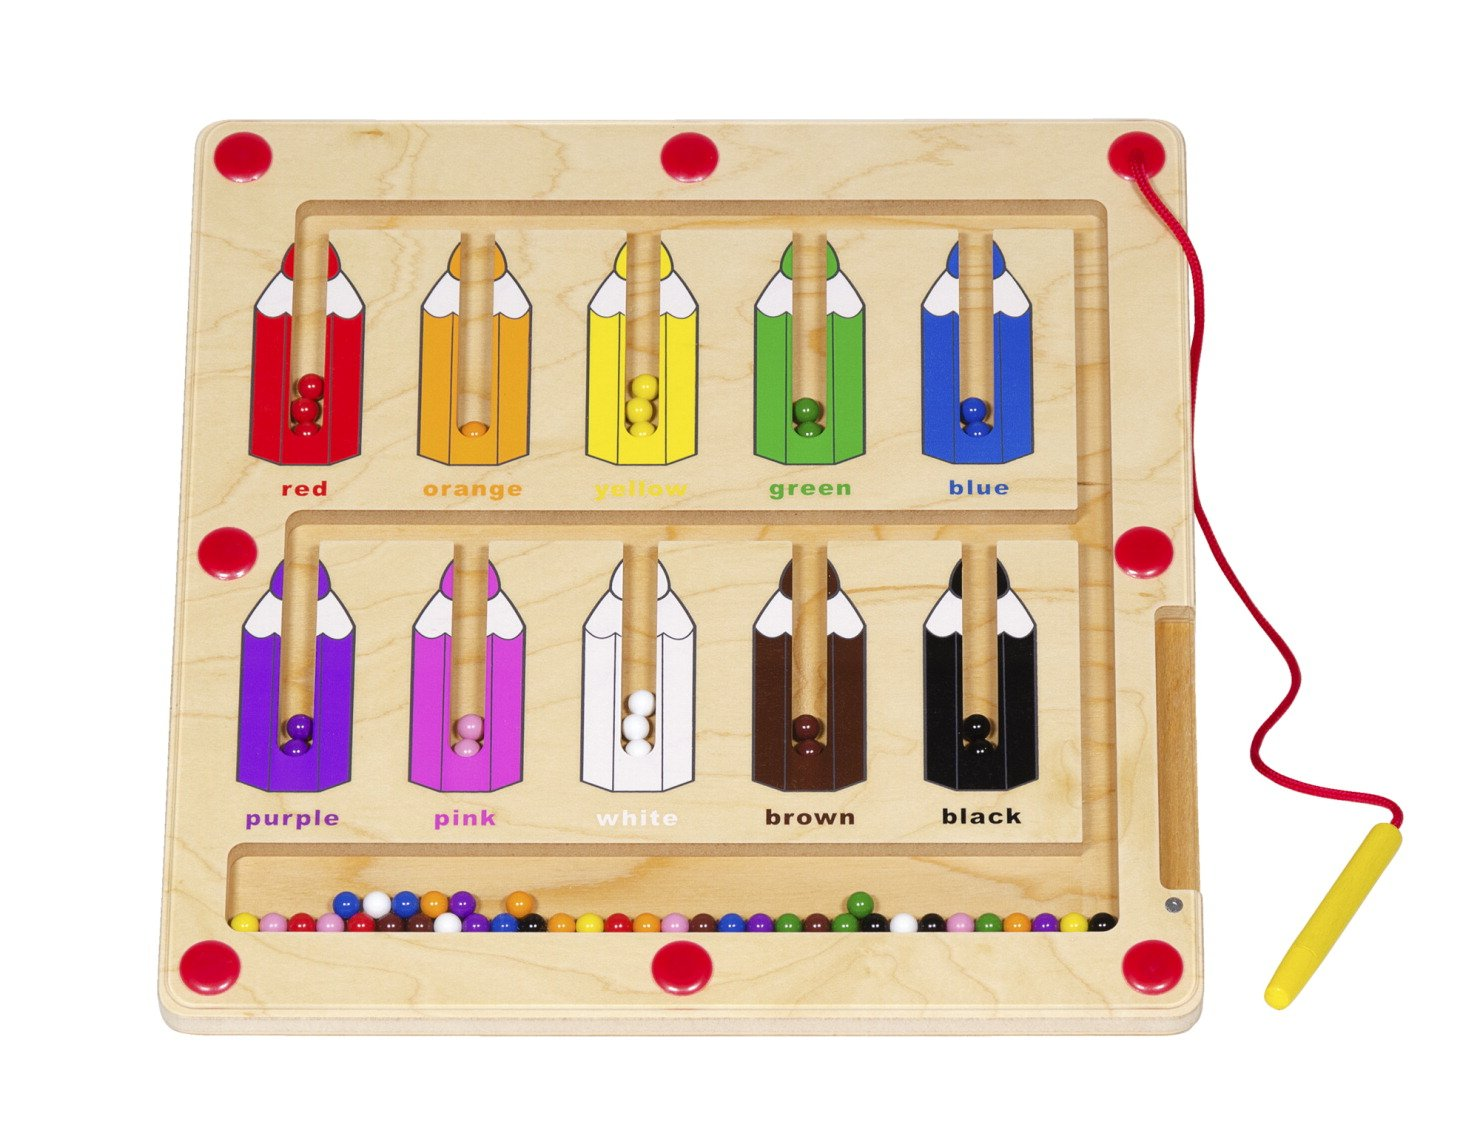 Magnetic Color Matching Game for Kids by Constructive Playthings